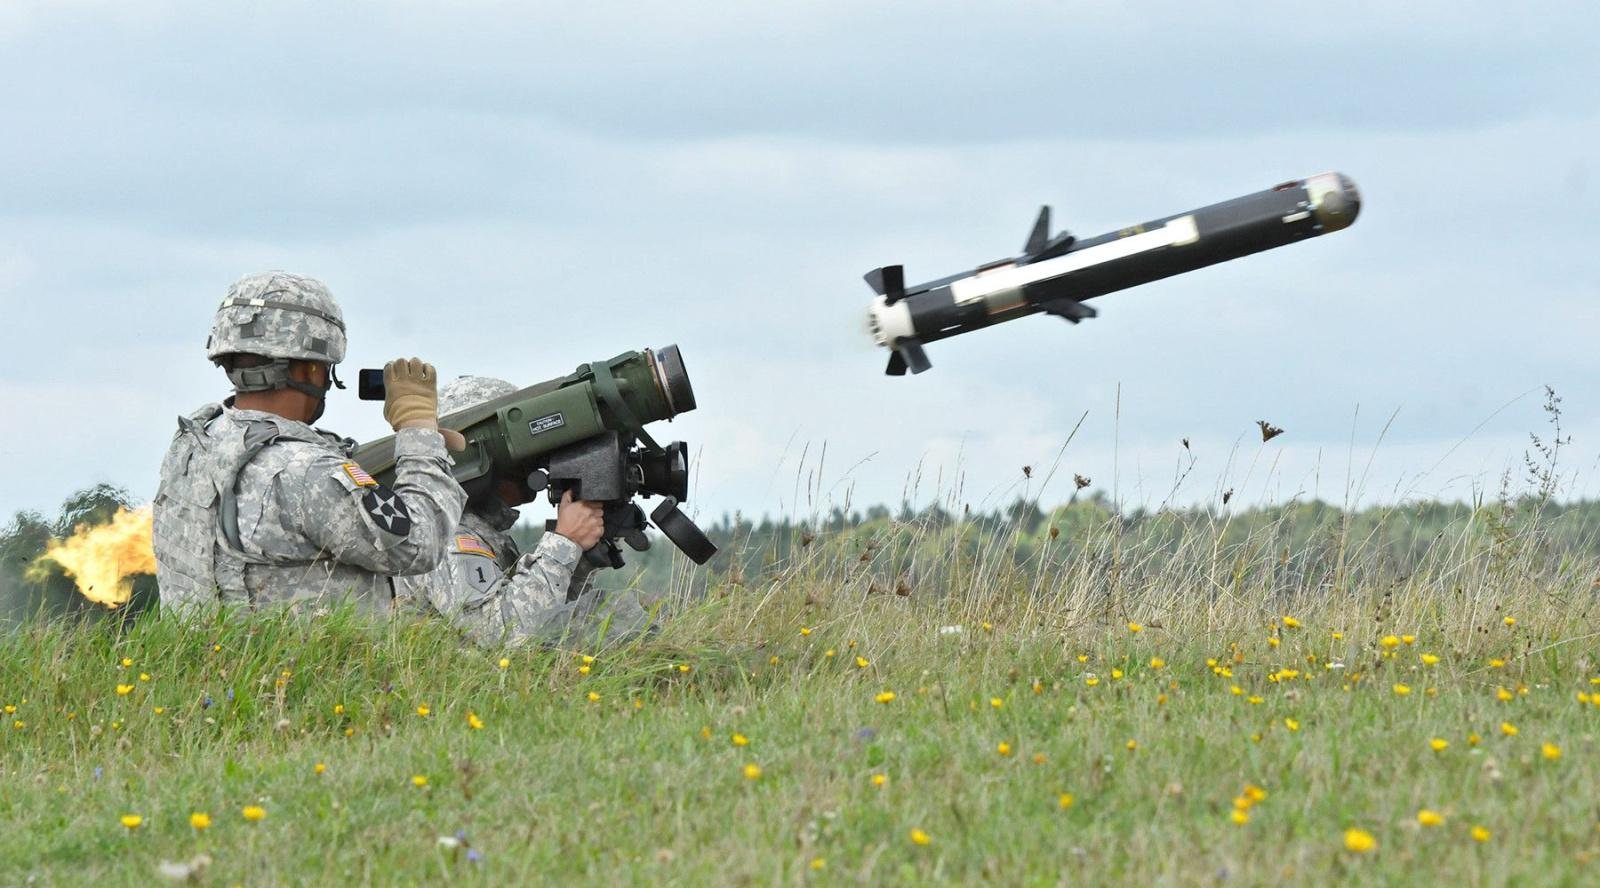 Javelin missile drawing